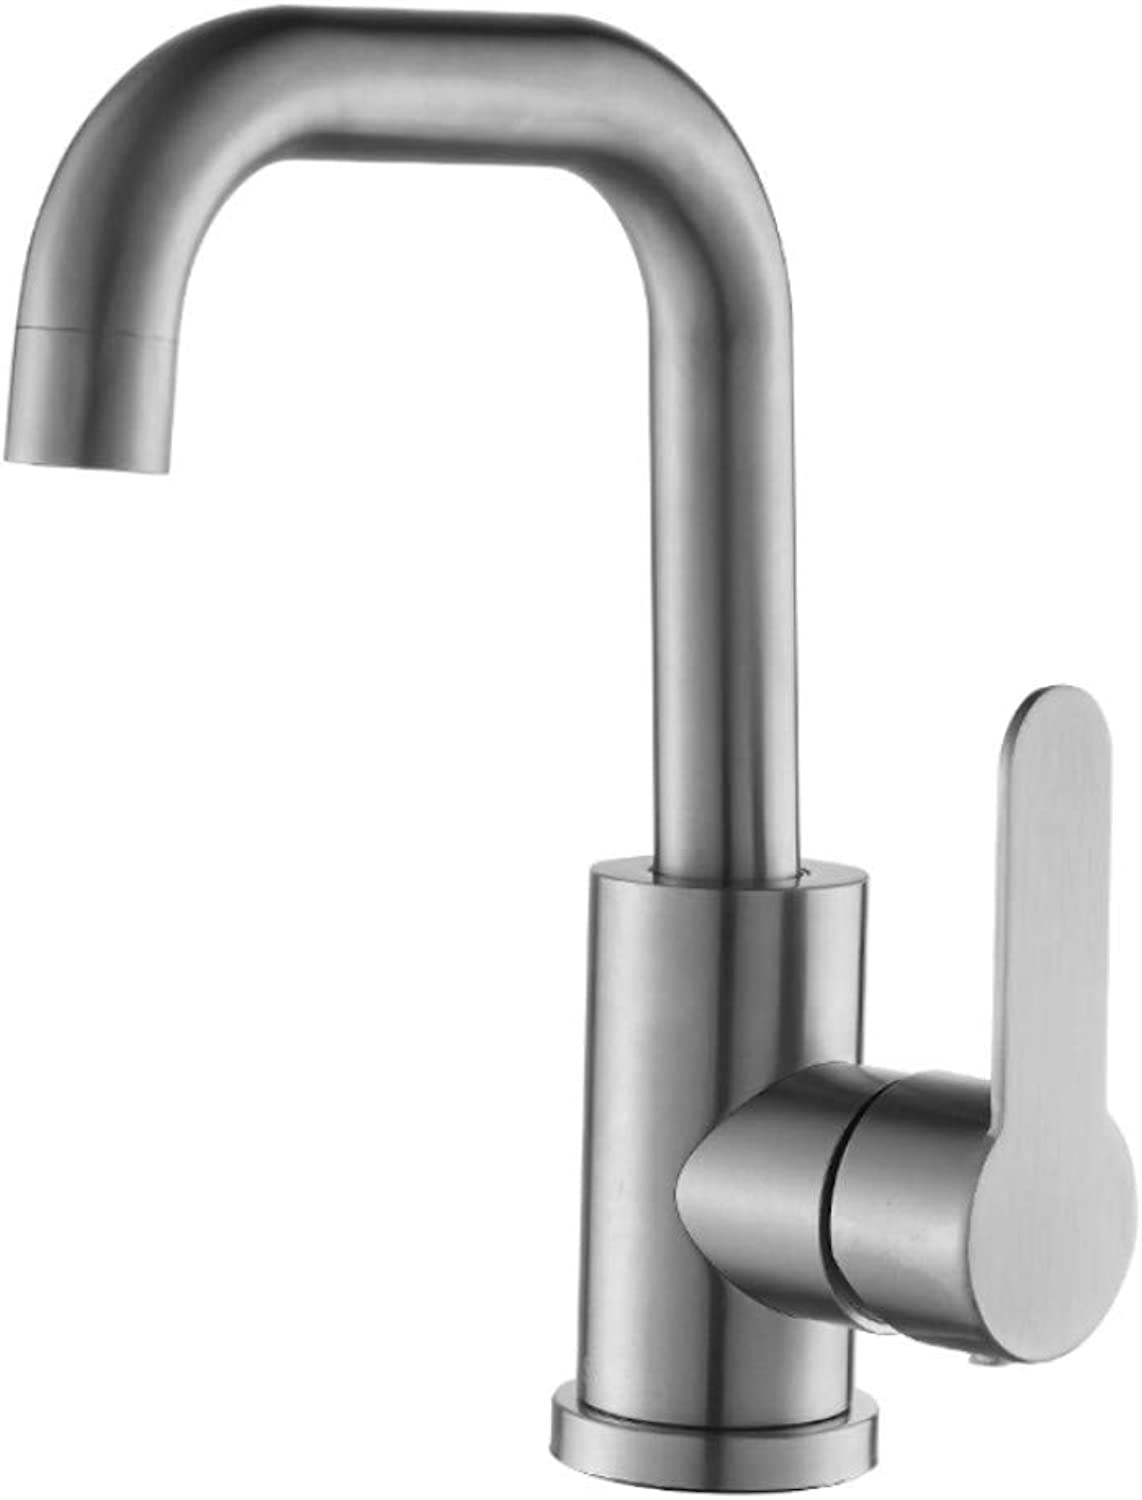 redOOY 304 stainless steel faucet hot and cold basin faucet basin bathroom washbasin redatable bathroom faucet